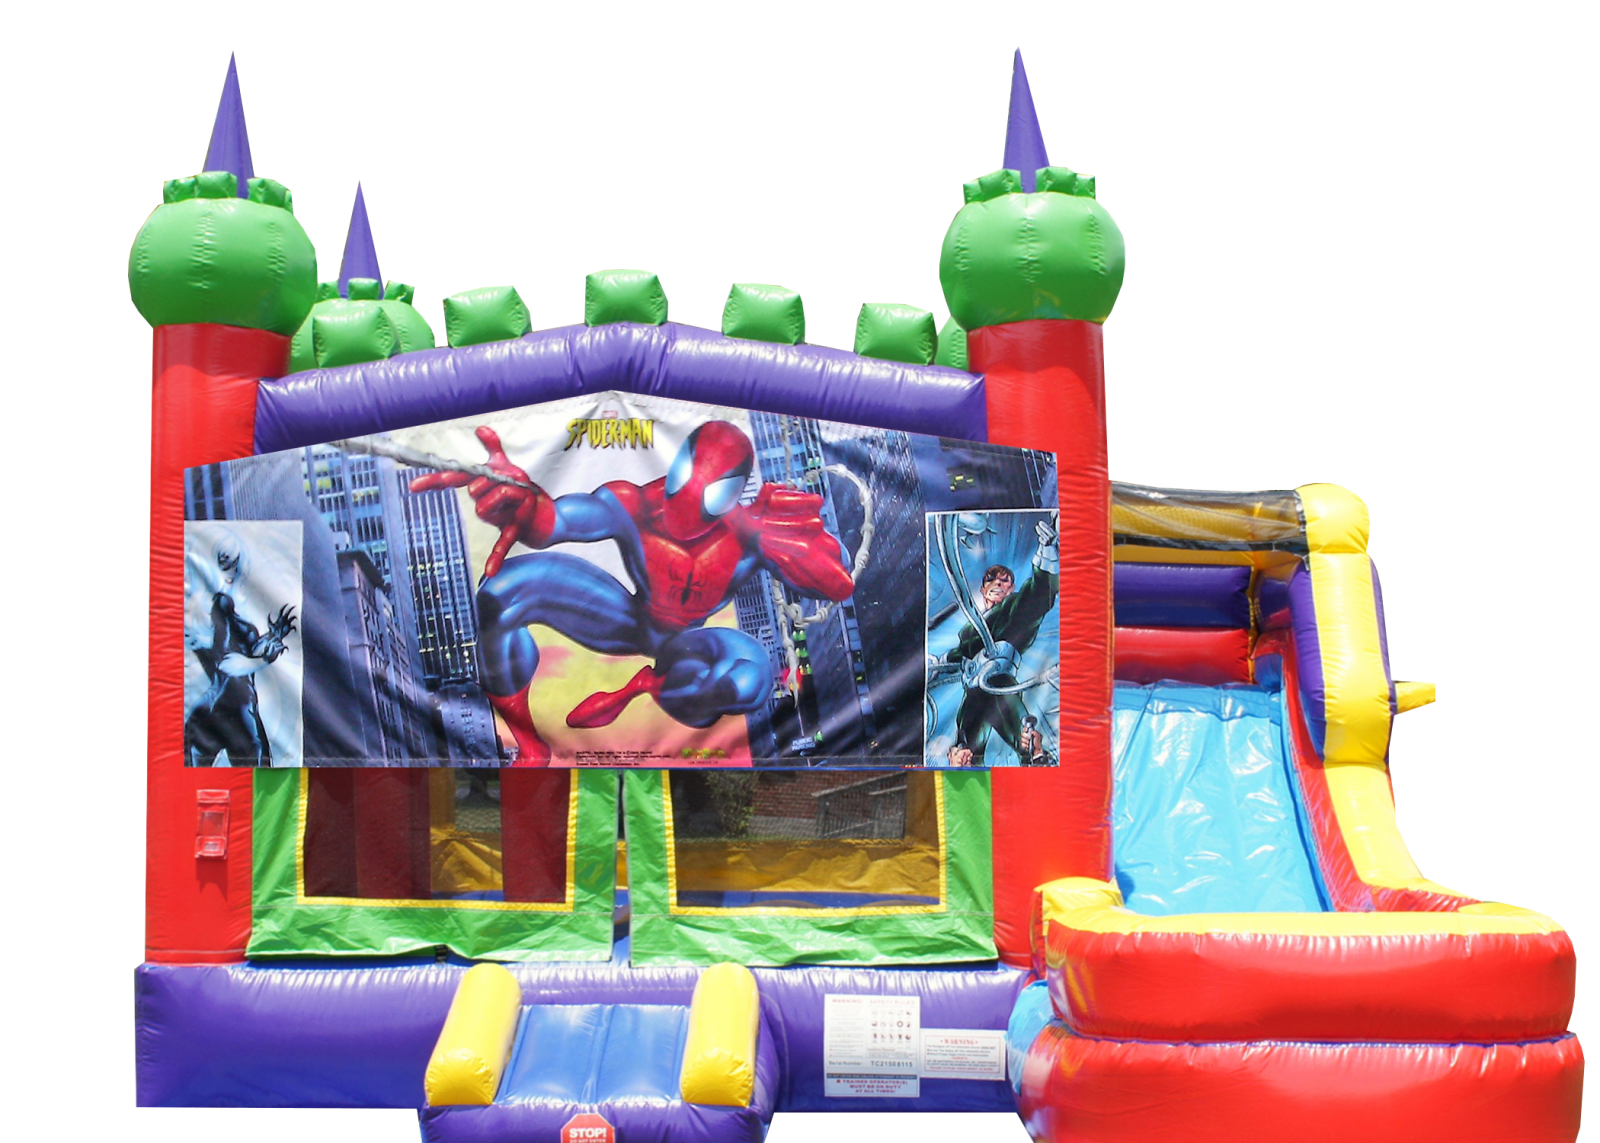 Spiderman Bounce house for rent Nashville TN Jumping Hearts Party Rentals